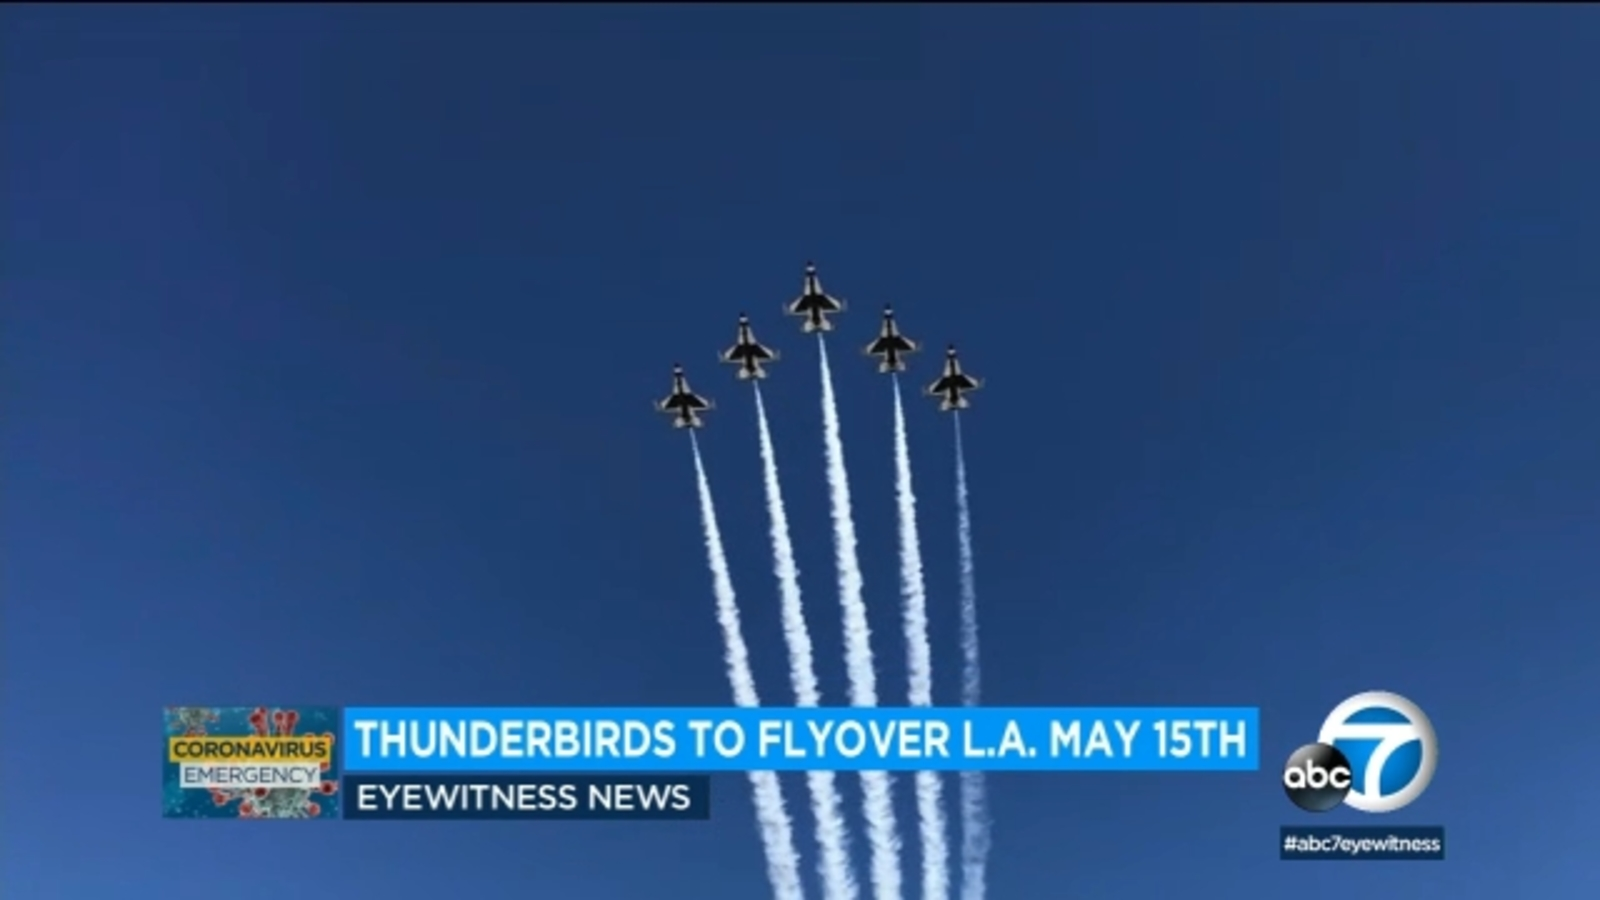 Thunderbirds Los Angeles flyover: Aerial show to fly over LA, San Diego on  Friday to salute frontline workers - ABC7 Los Angeles